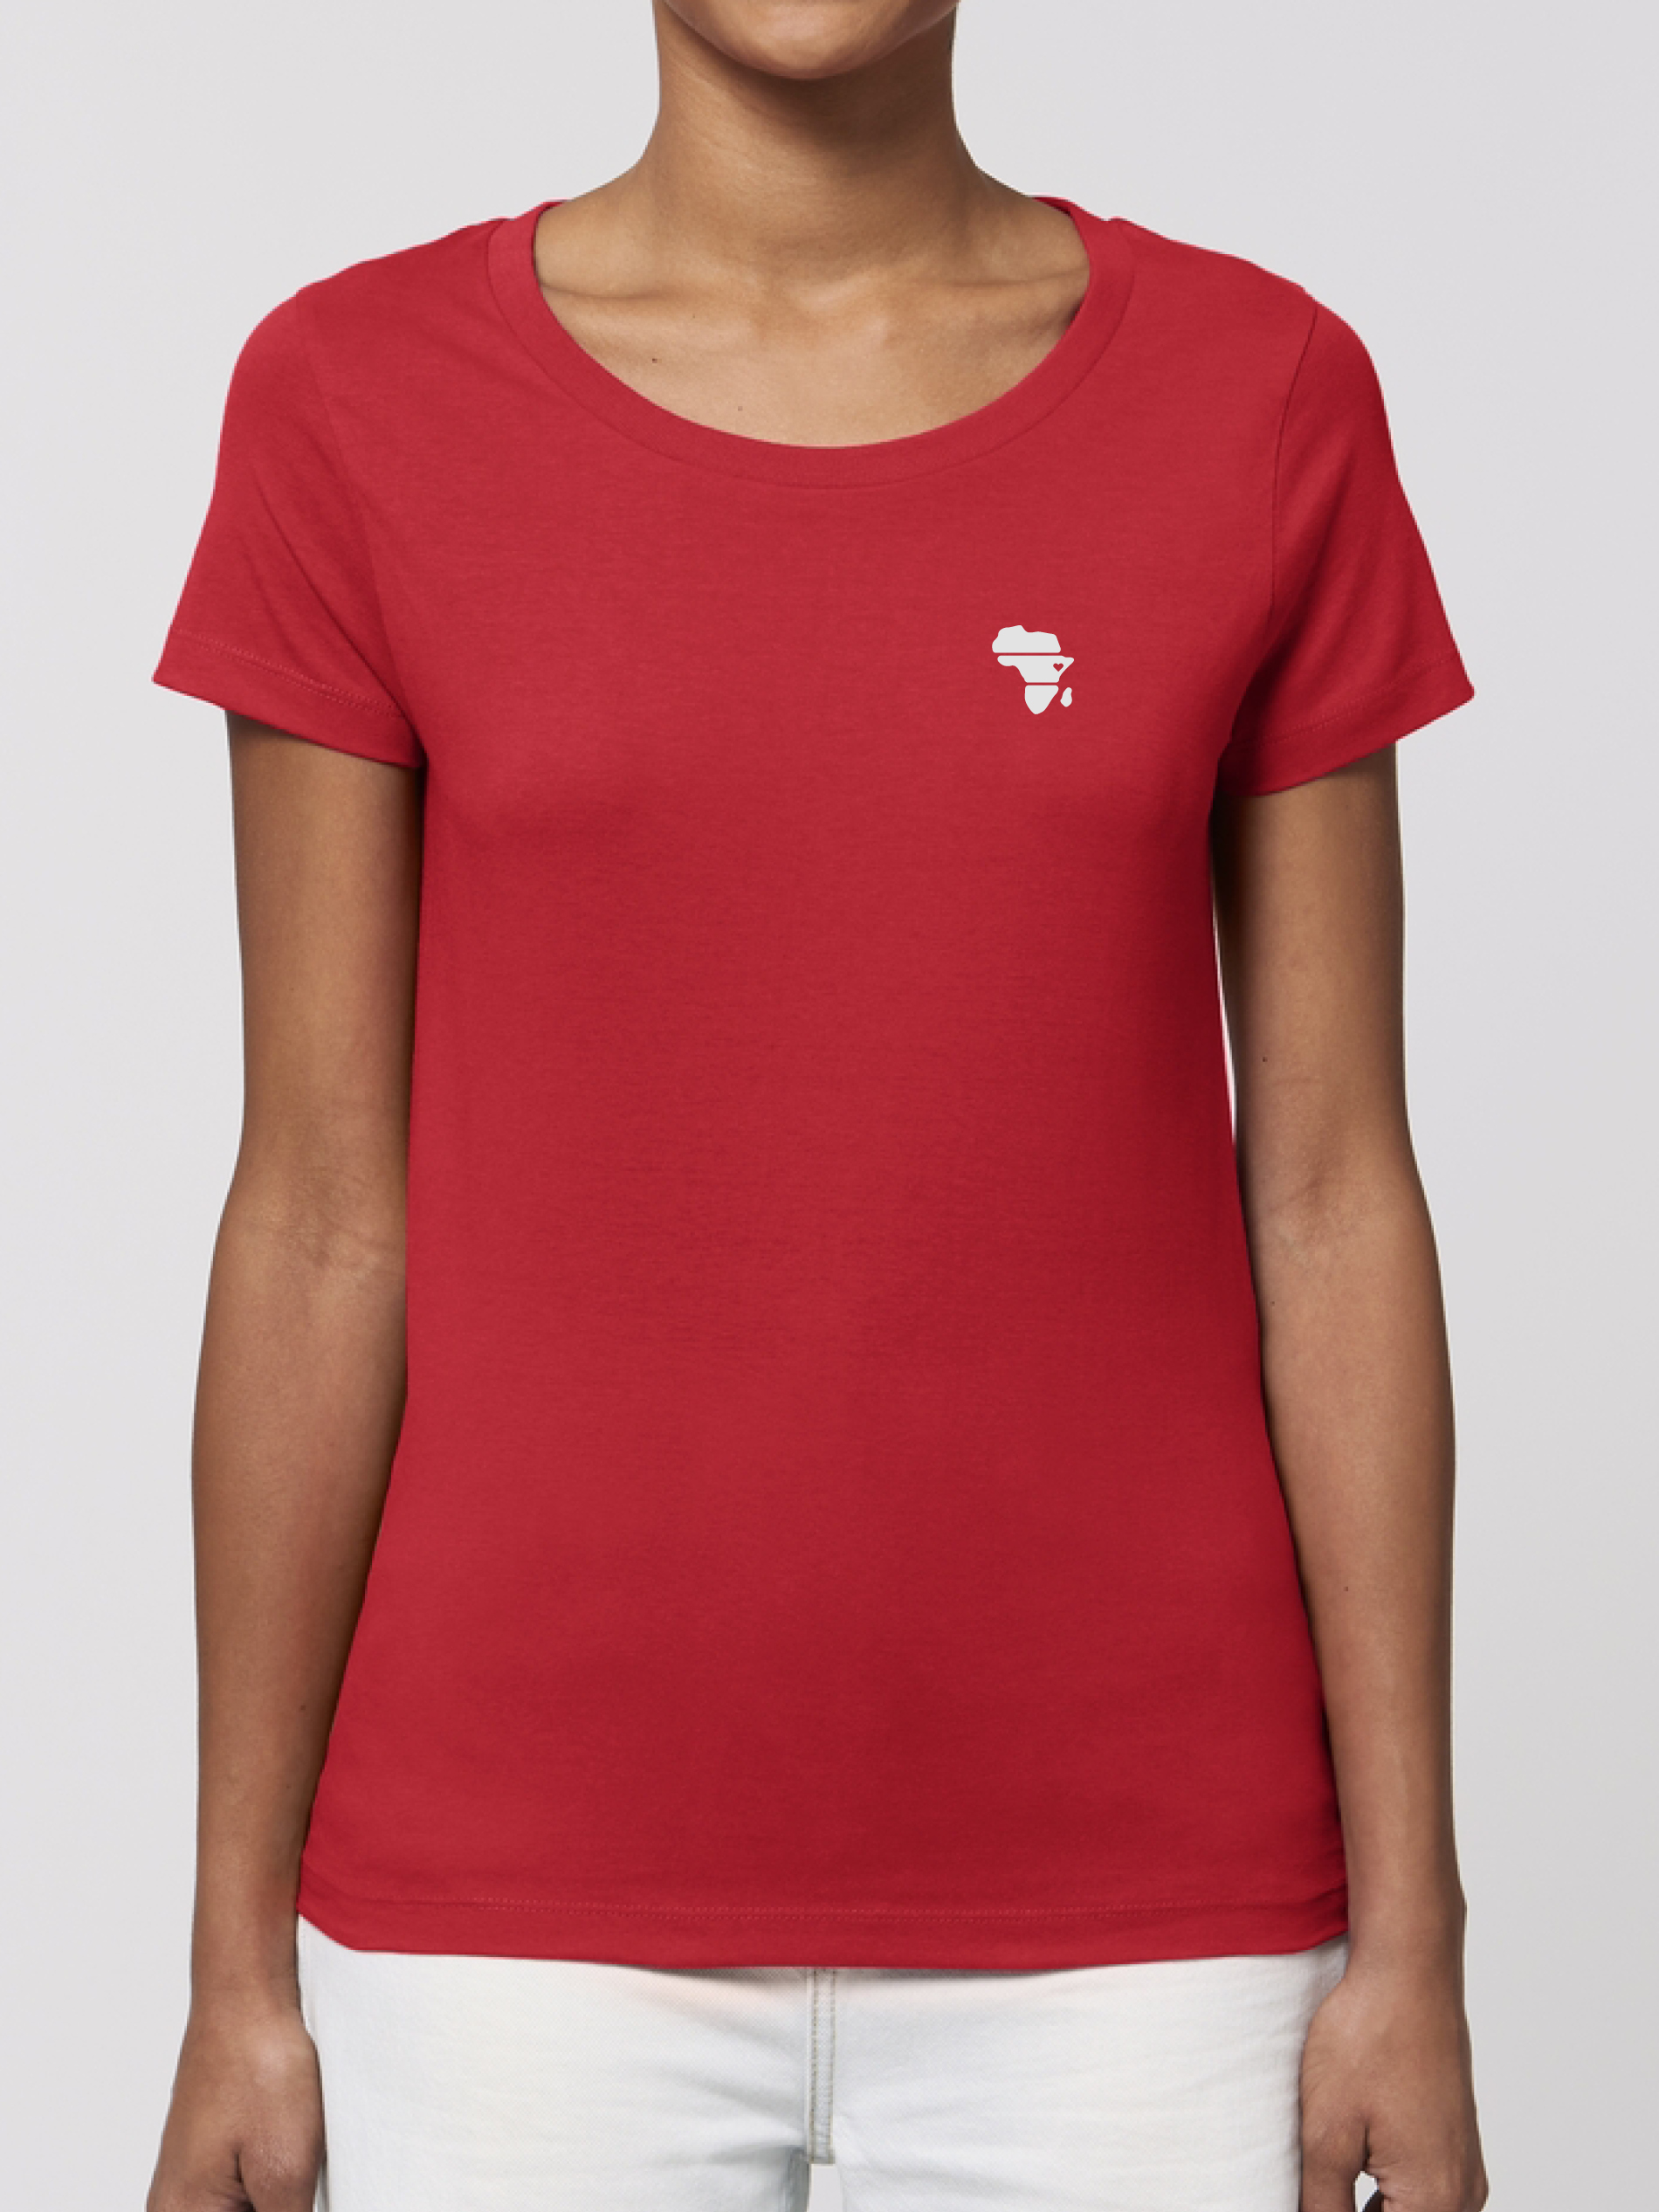 shirt-rot_watoto-foundation-ch-damen_aur